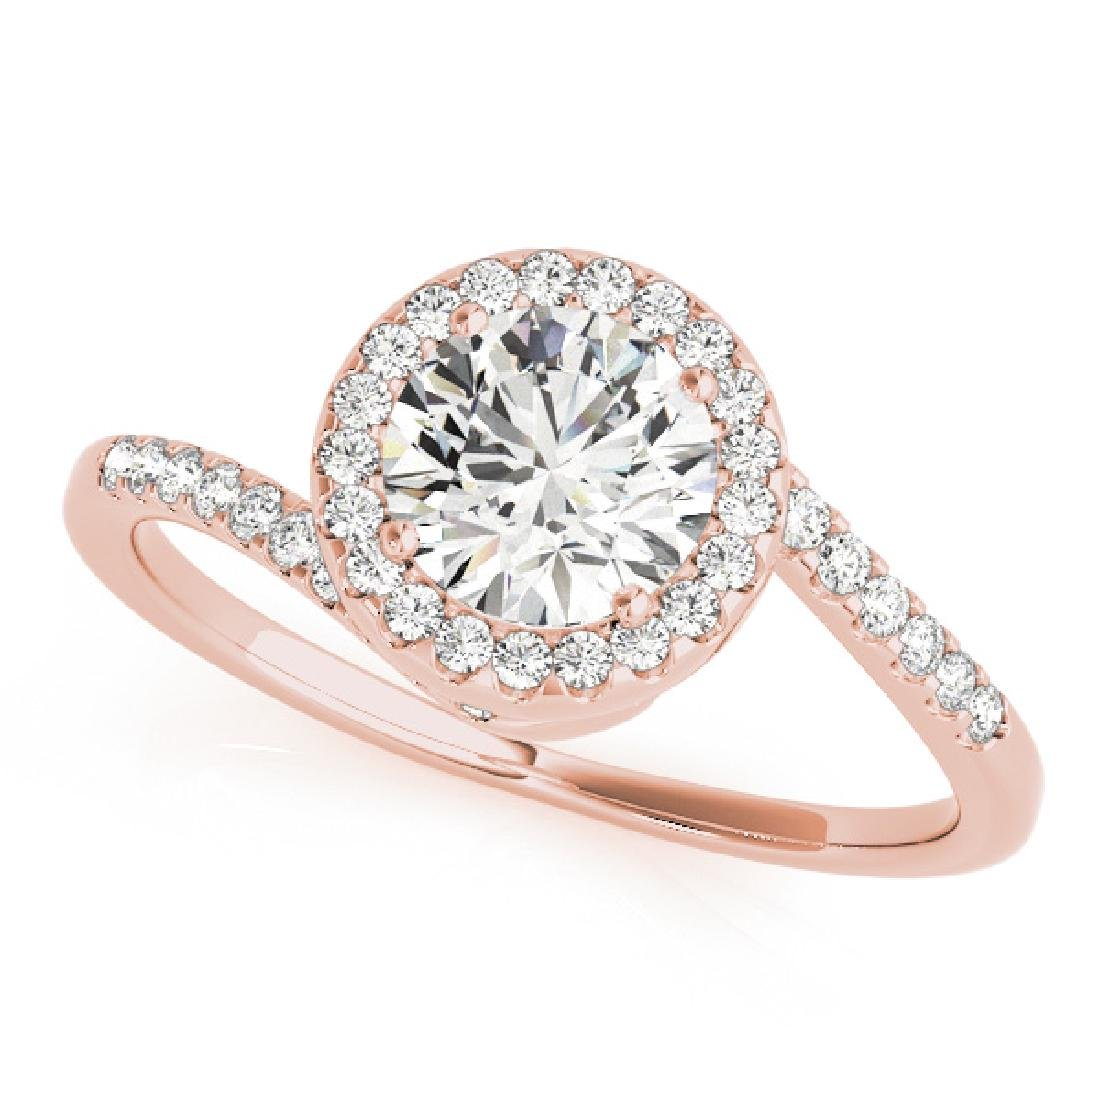 CERTIFIED 18K ROSE GOLD 1.49 CT G-H/VS-SI1 DIAMOND HALO